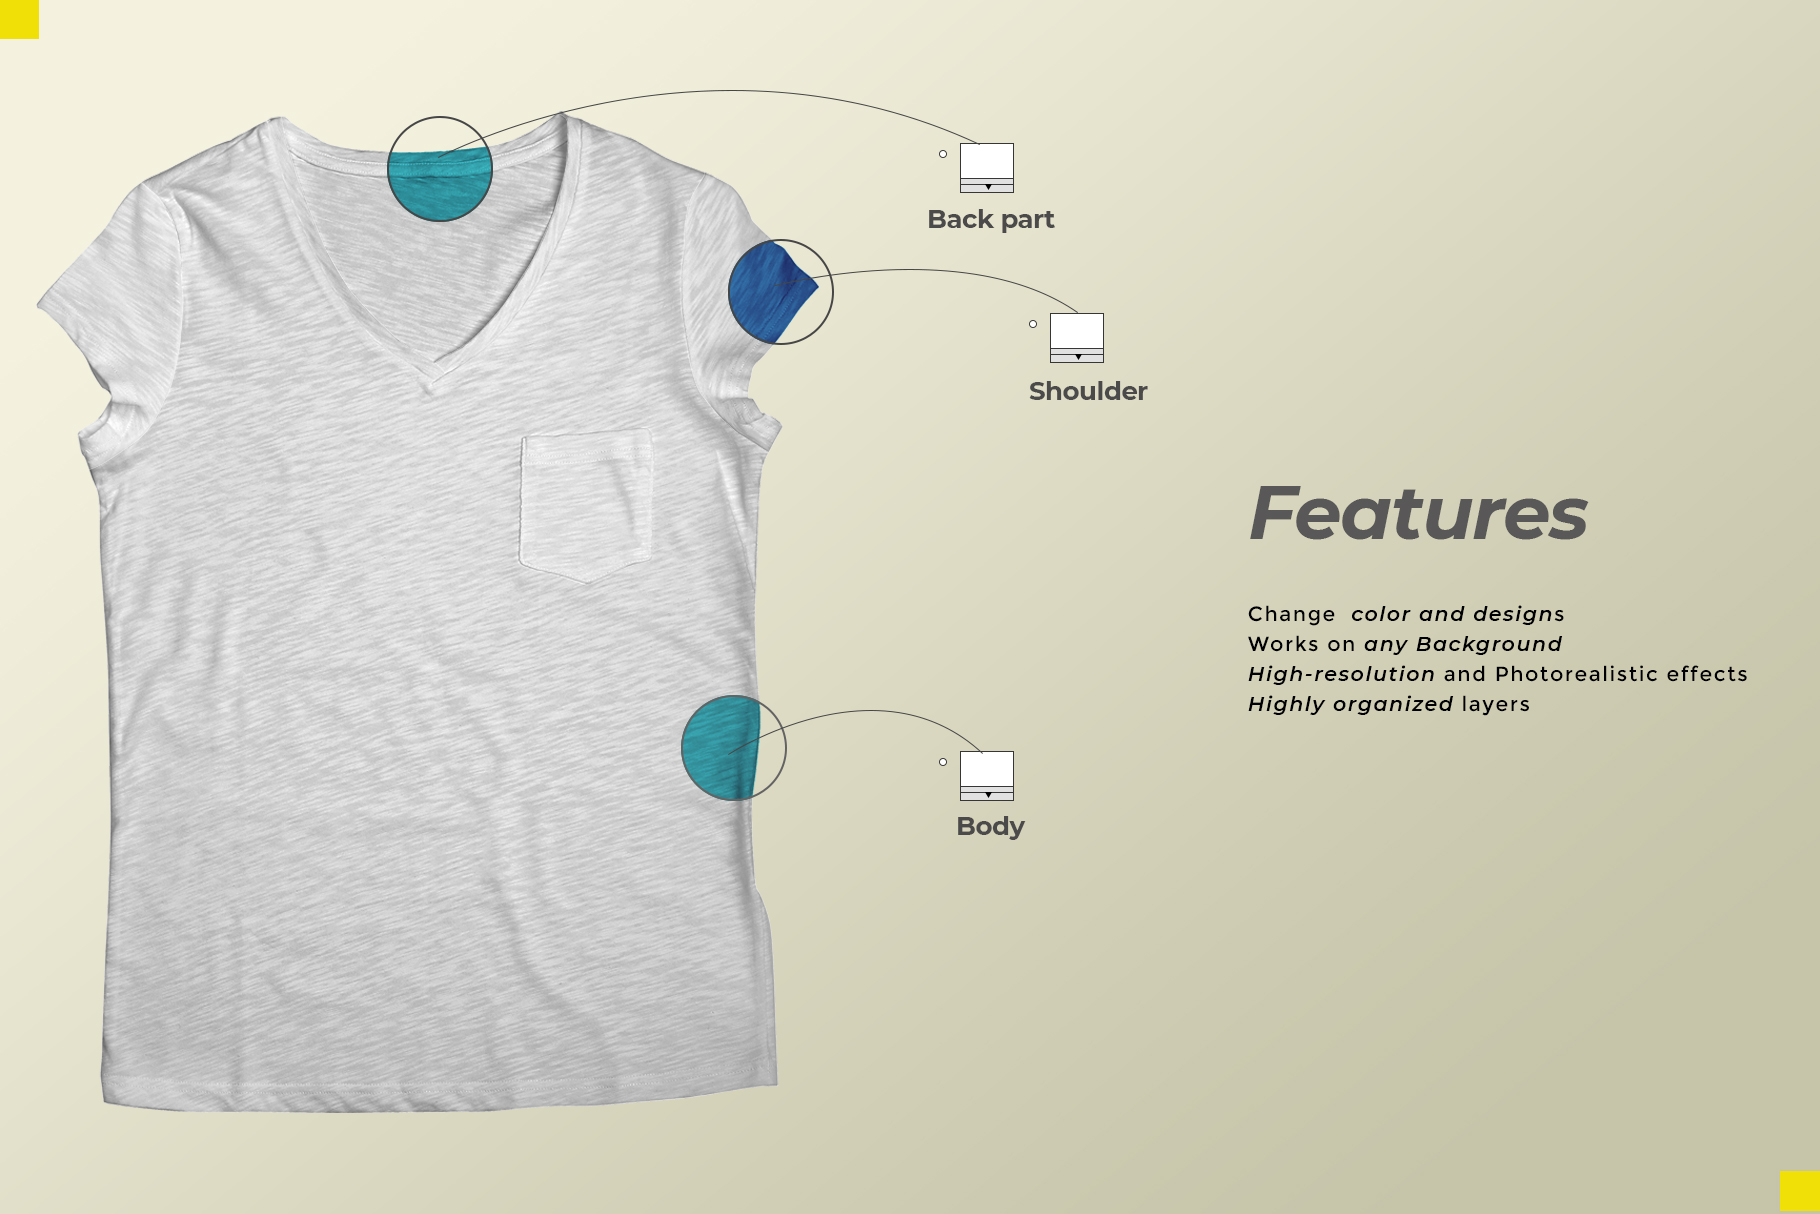 multiple-collar-type-t-shirt-mockup-image-preview-5